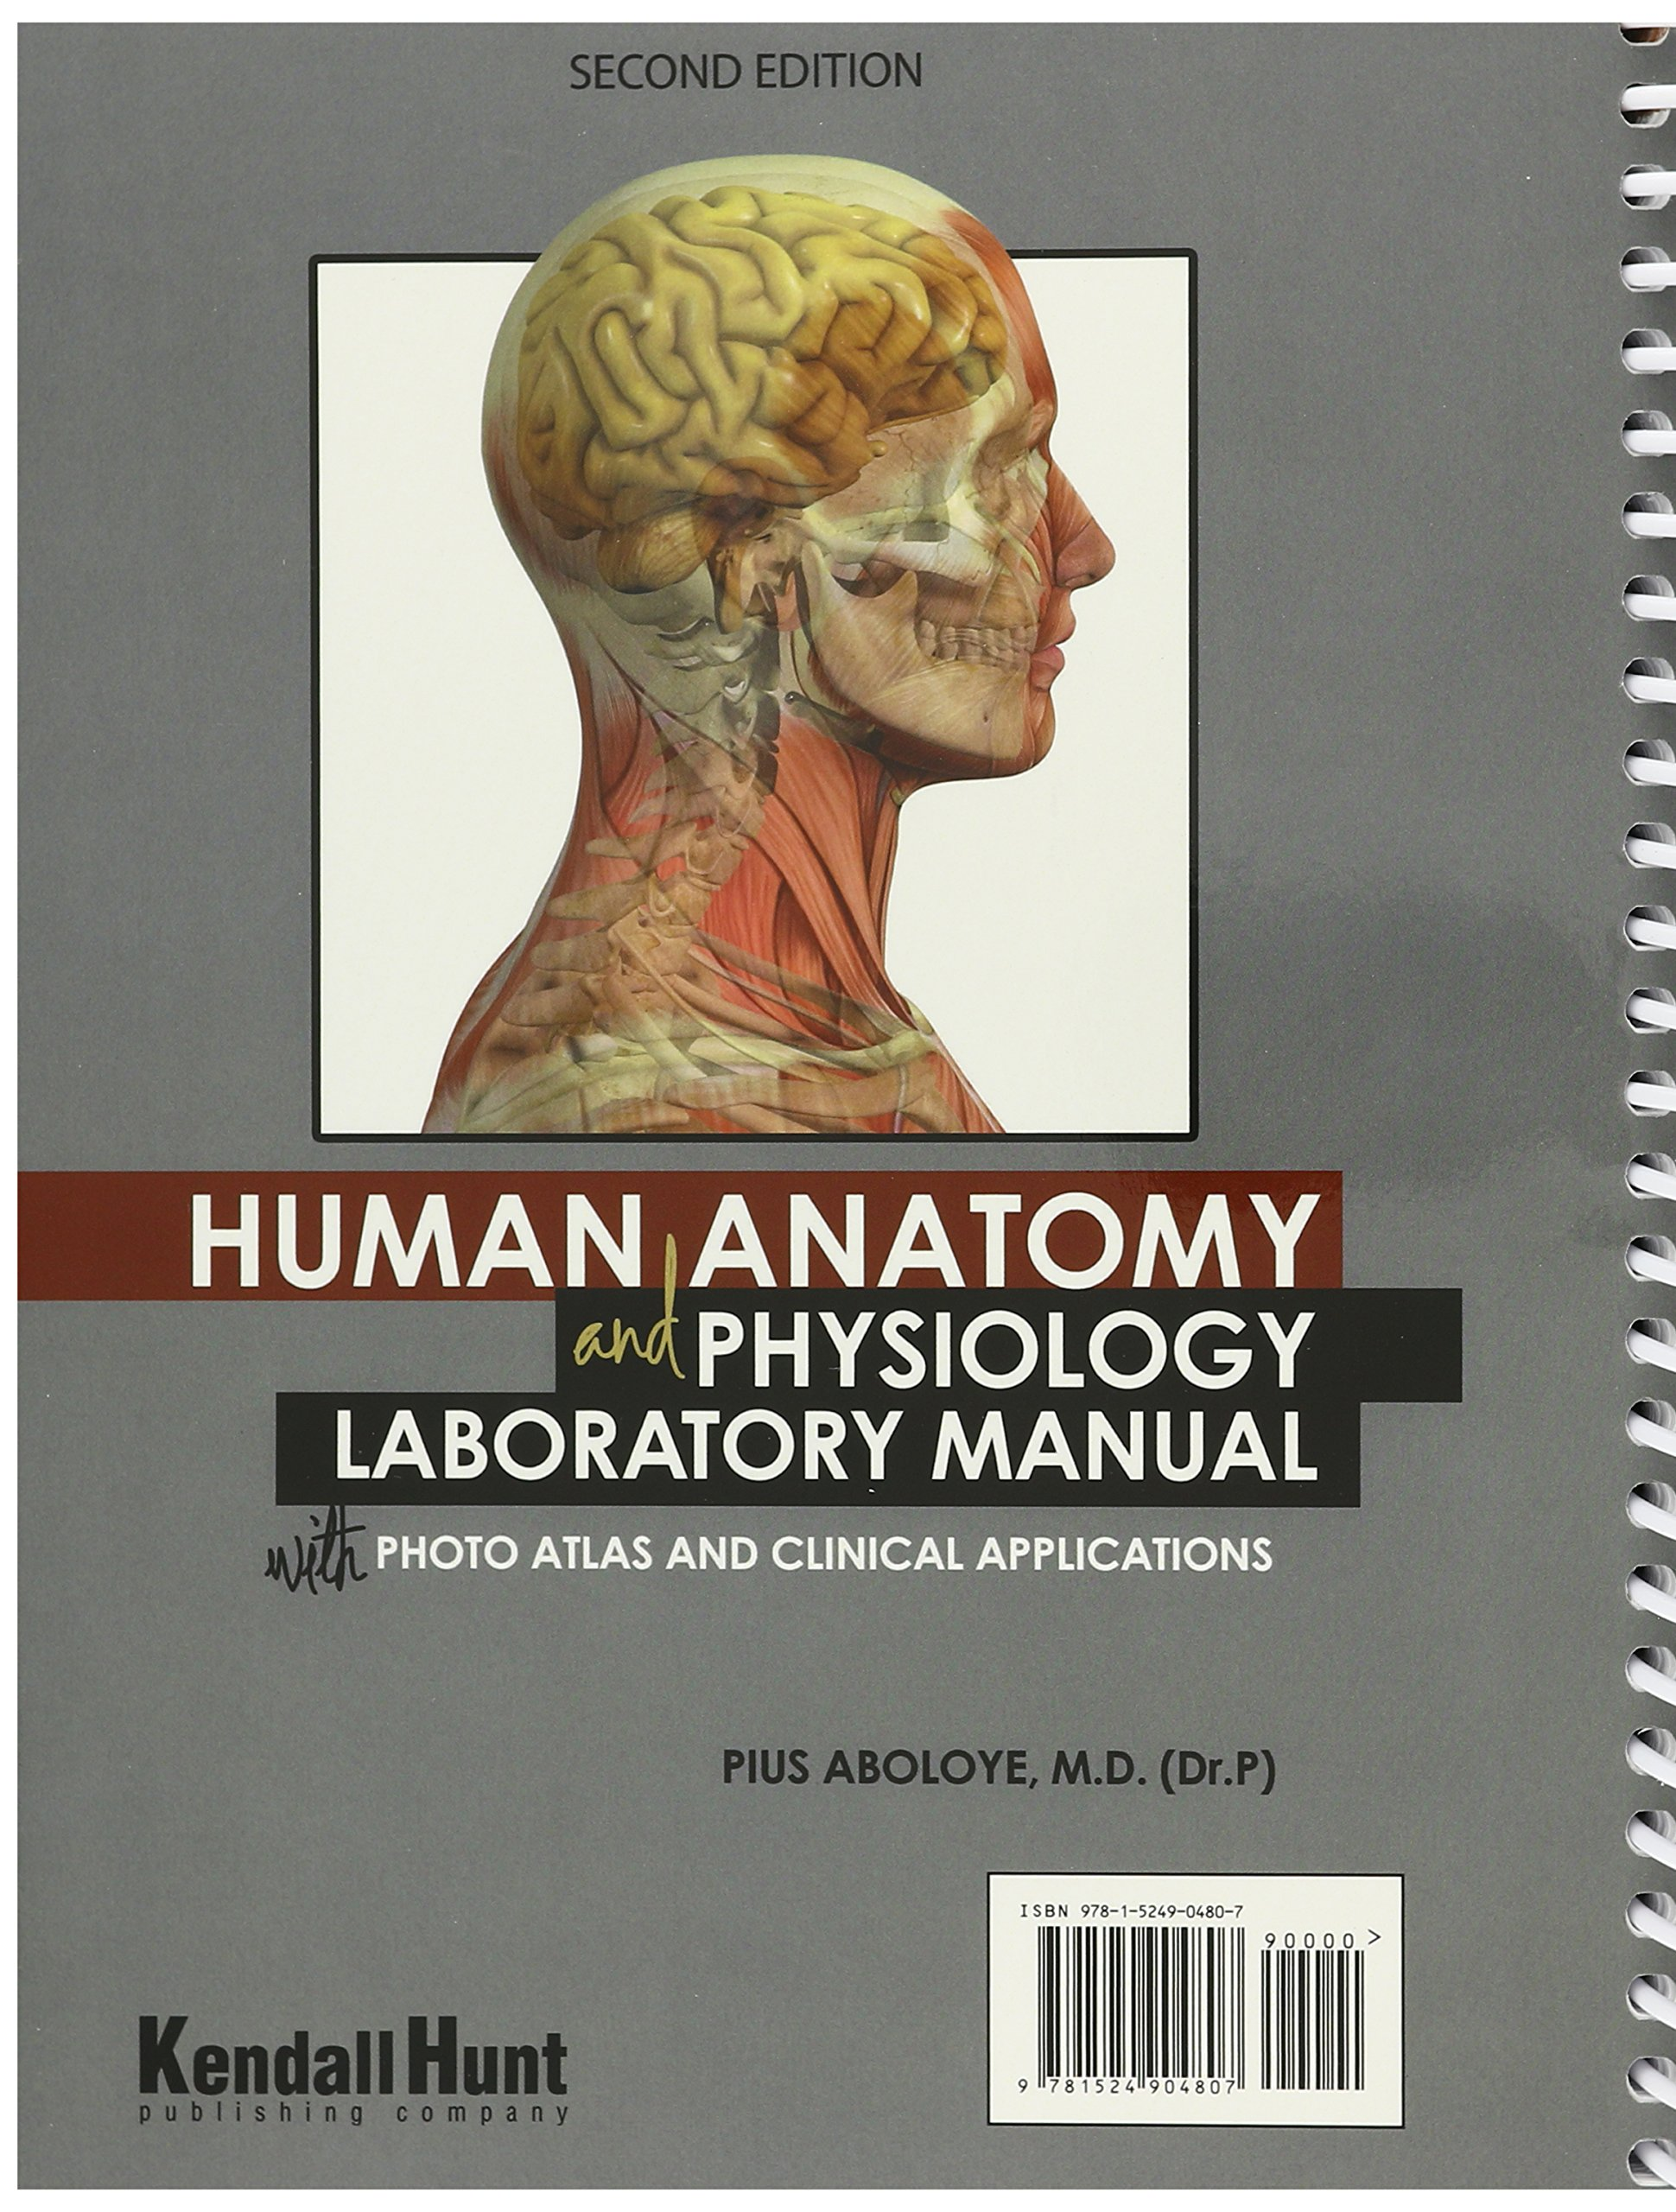 Human Anatomy and Physiology Laboratory Manual with Photo Atlas and Clinical  Applications: Amazon.co.uk: Pius Aboloye: 9781524904807: Books